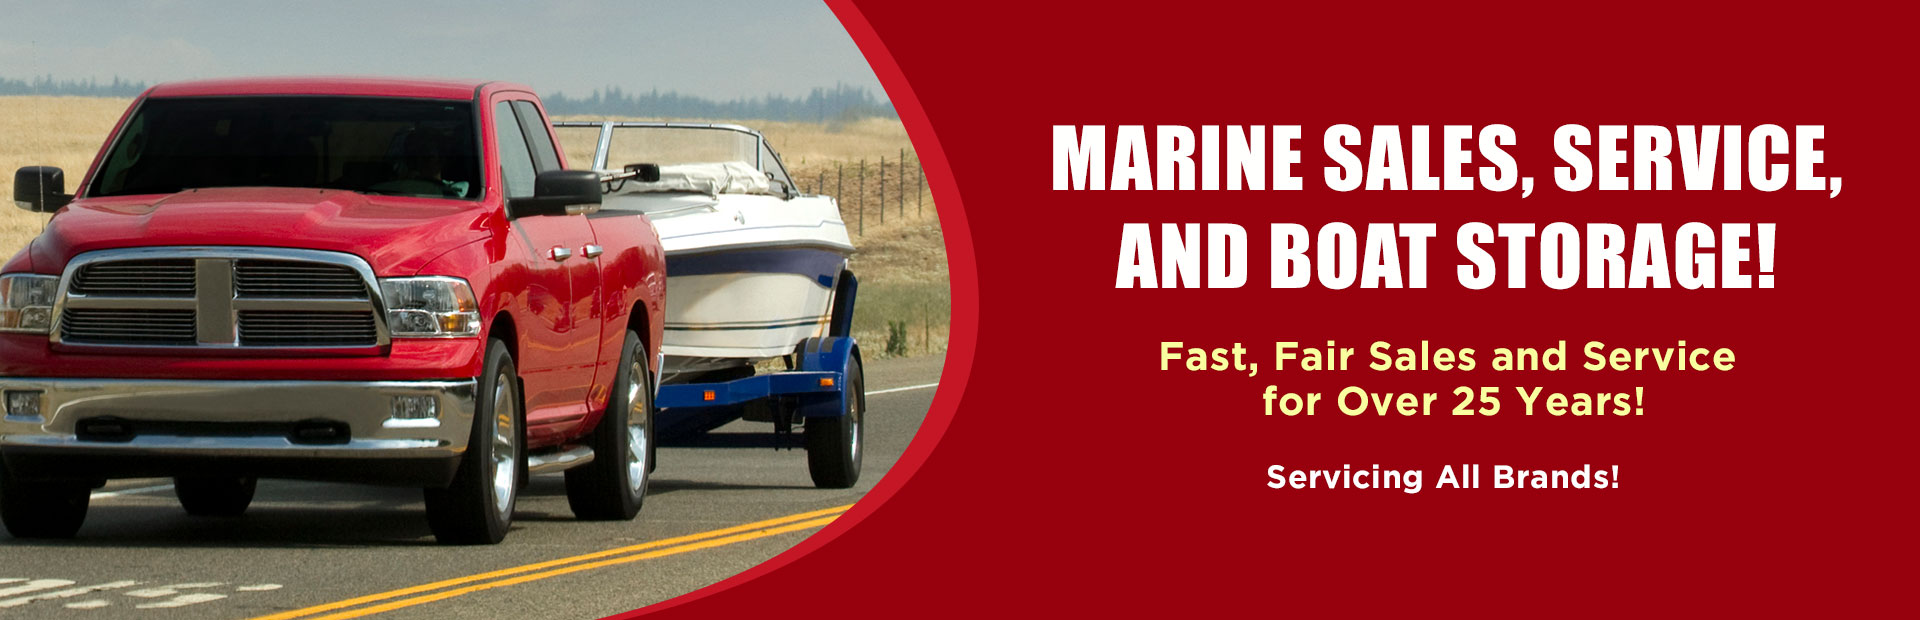 Champlain Valley Motorsports offers marine sales, service, and boat storage! They service all brands! They have offered fast, fair sales and service for over 25 years!